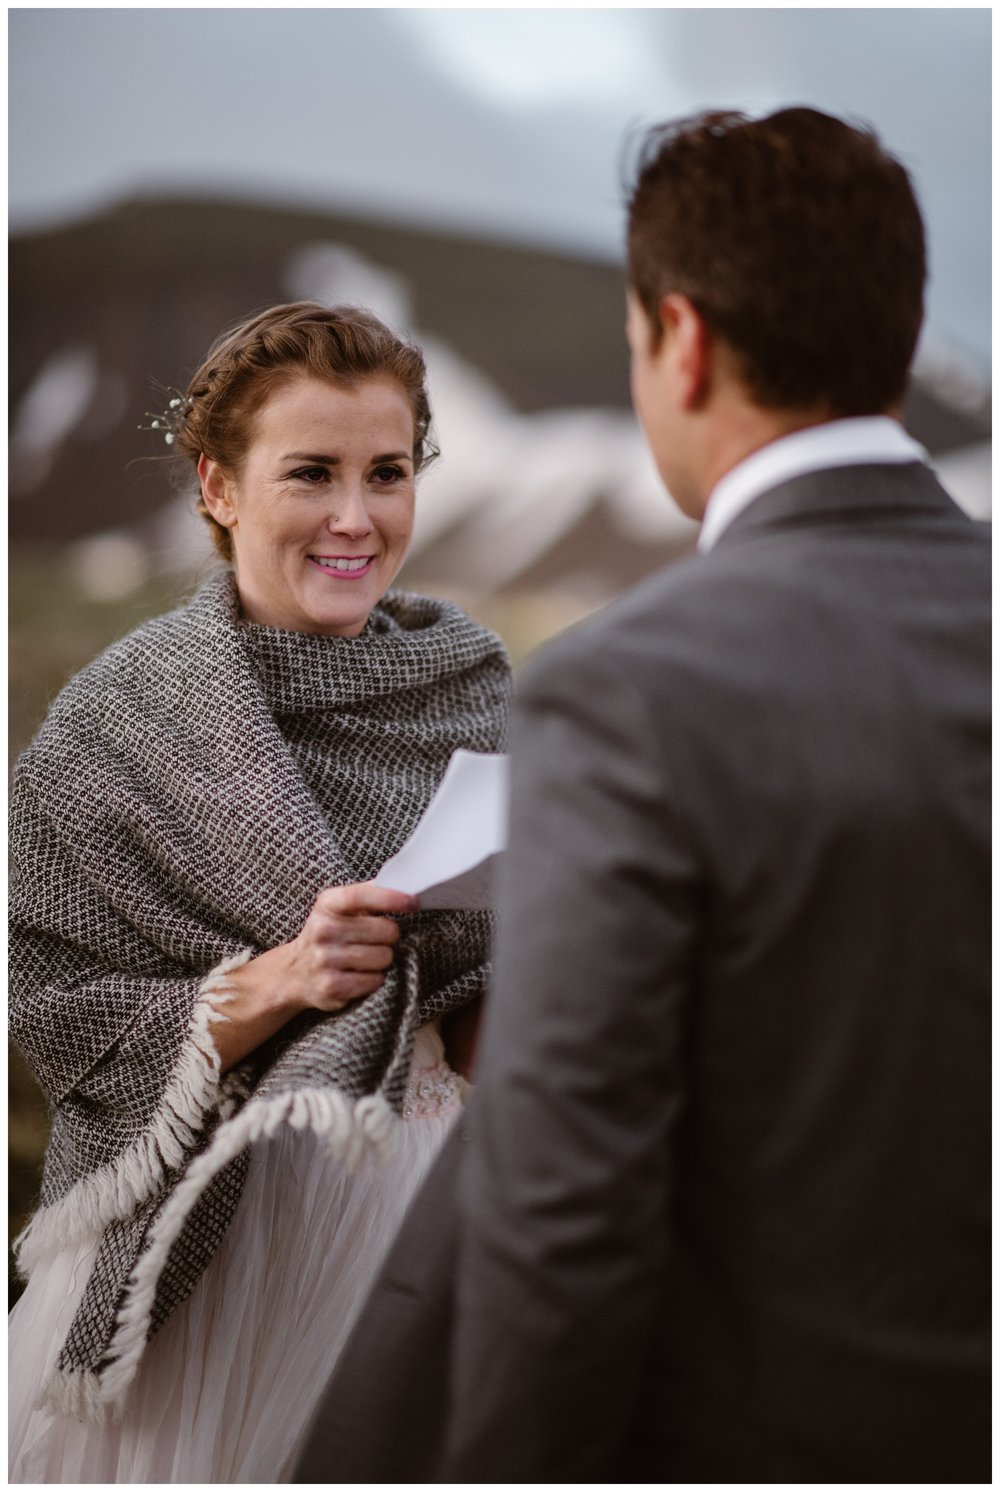 Her blush wedding dress covered in a blanket to protect her from high winds at the top of Independence Pass, Marcela reads her vows during their intimate two person elopement ceremony. Photo by Maddie Mae, Adventure Instead.